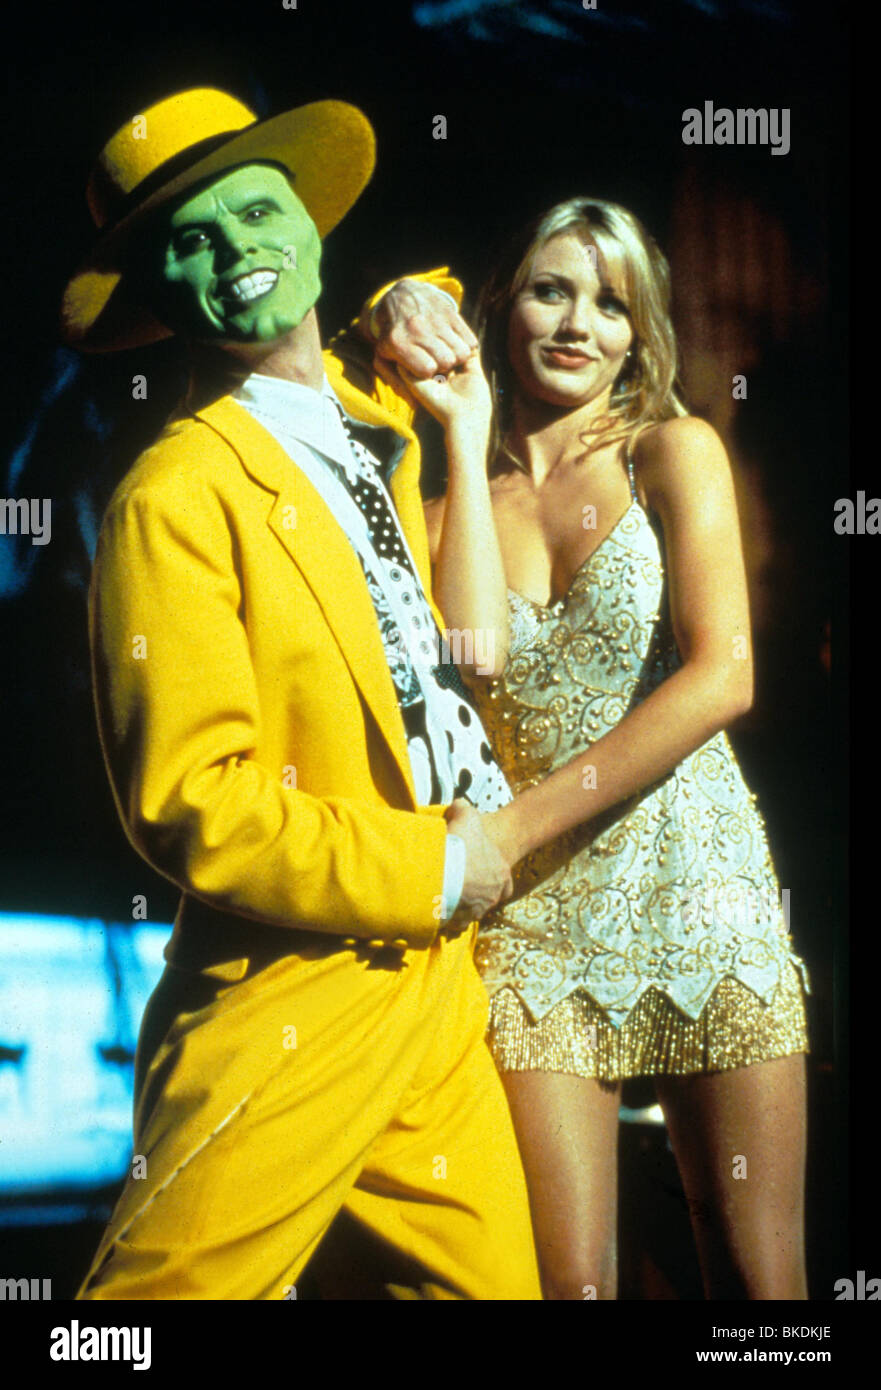 The mask 1994 jim carrey cameron diaz mask 099 stock for The mask photos gallery